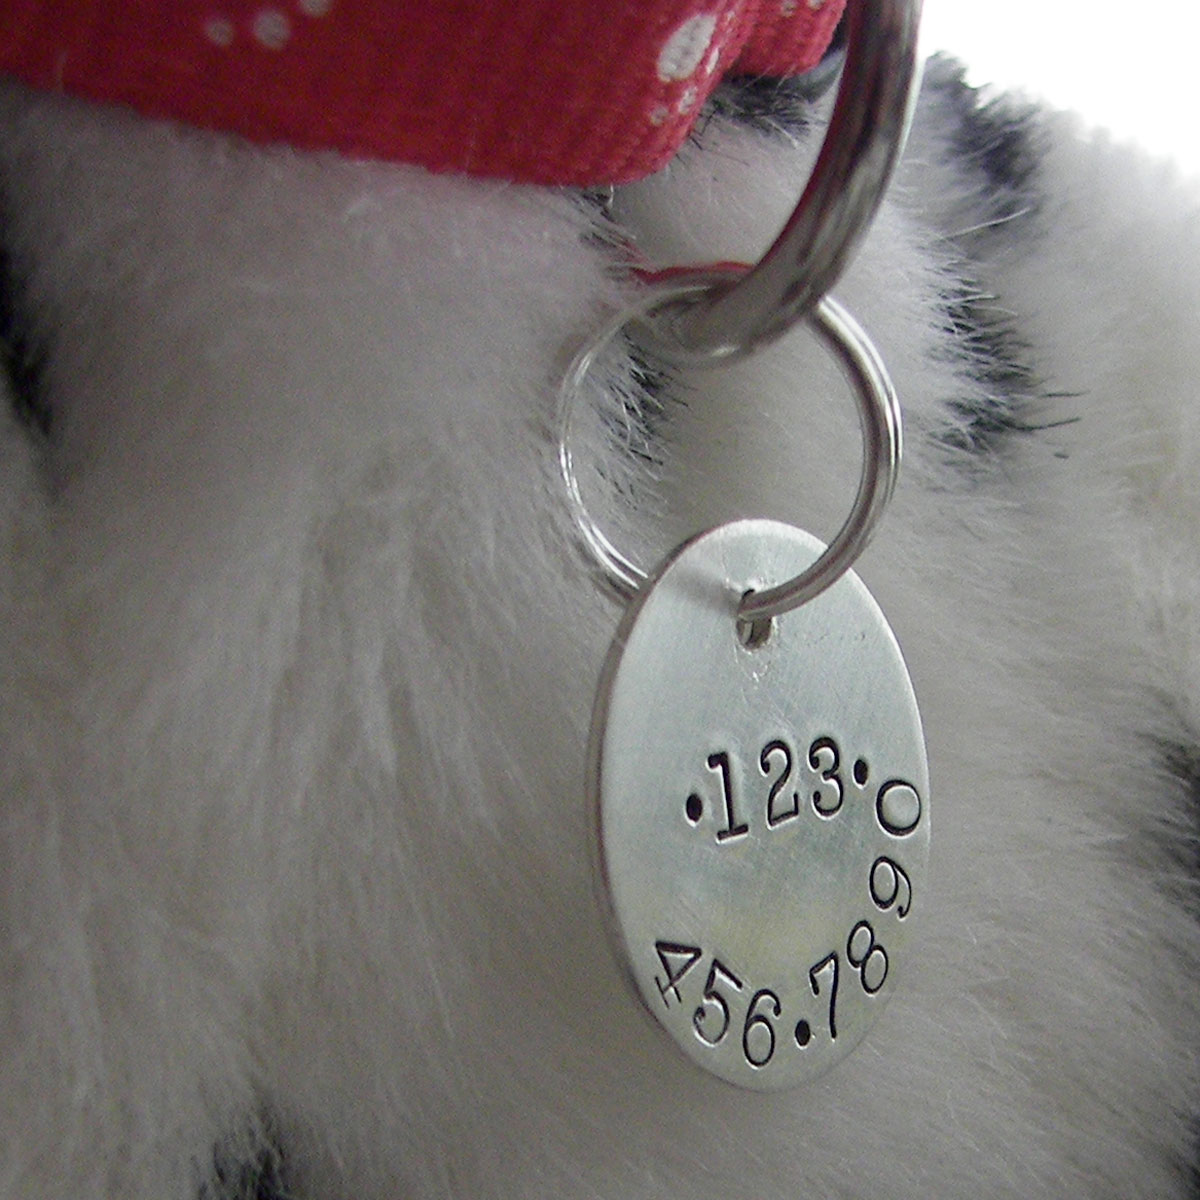 My Kitty Personalized Pet Tag with phone number on back